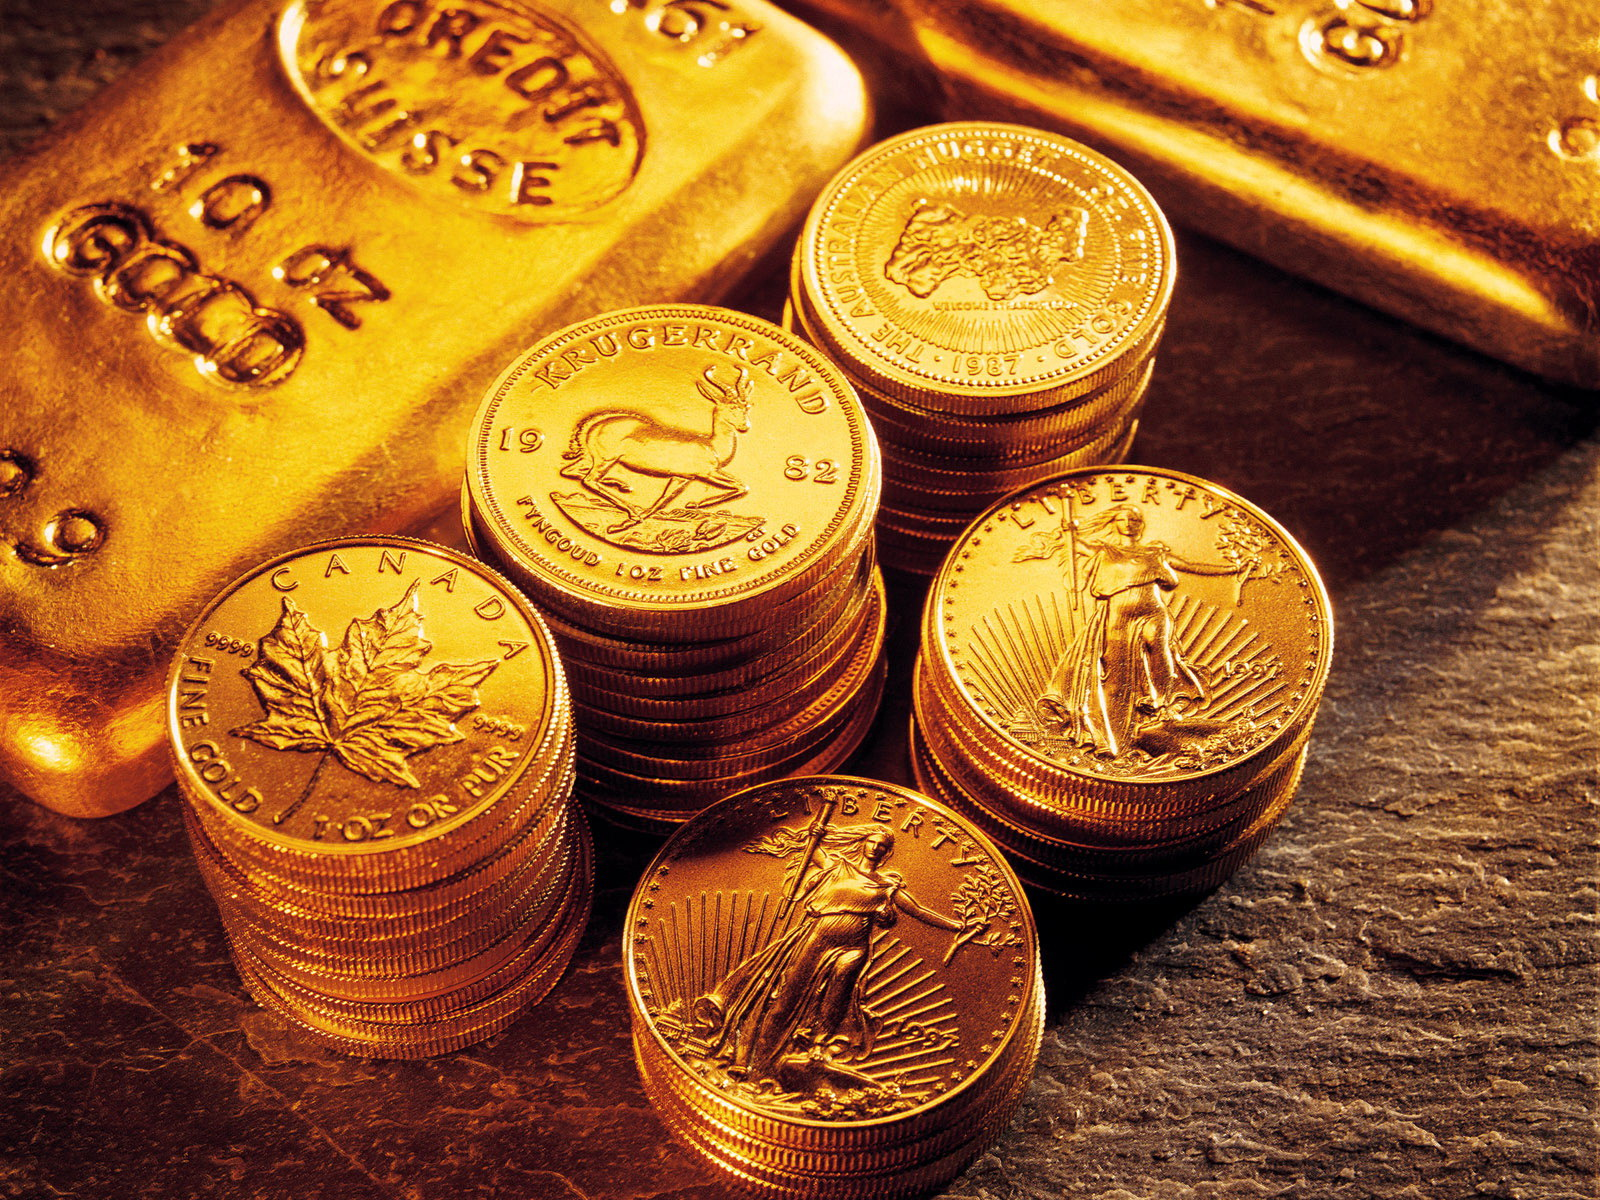 Top 7 Gold Coins to Buy